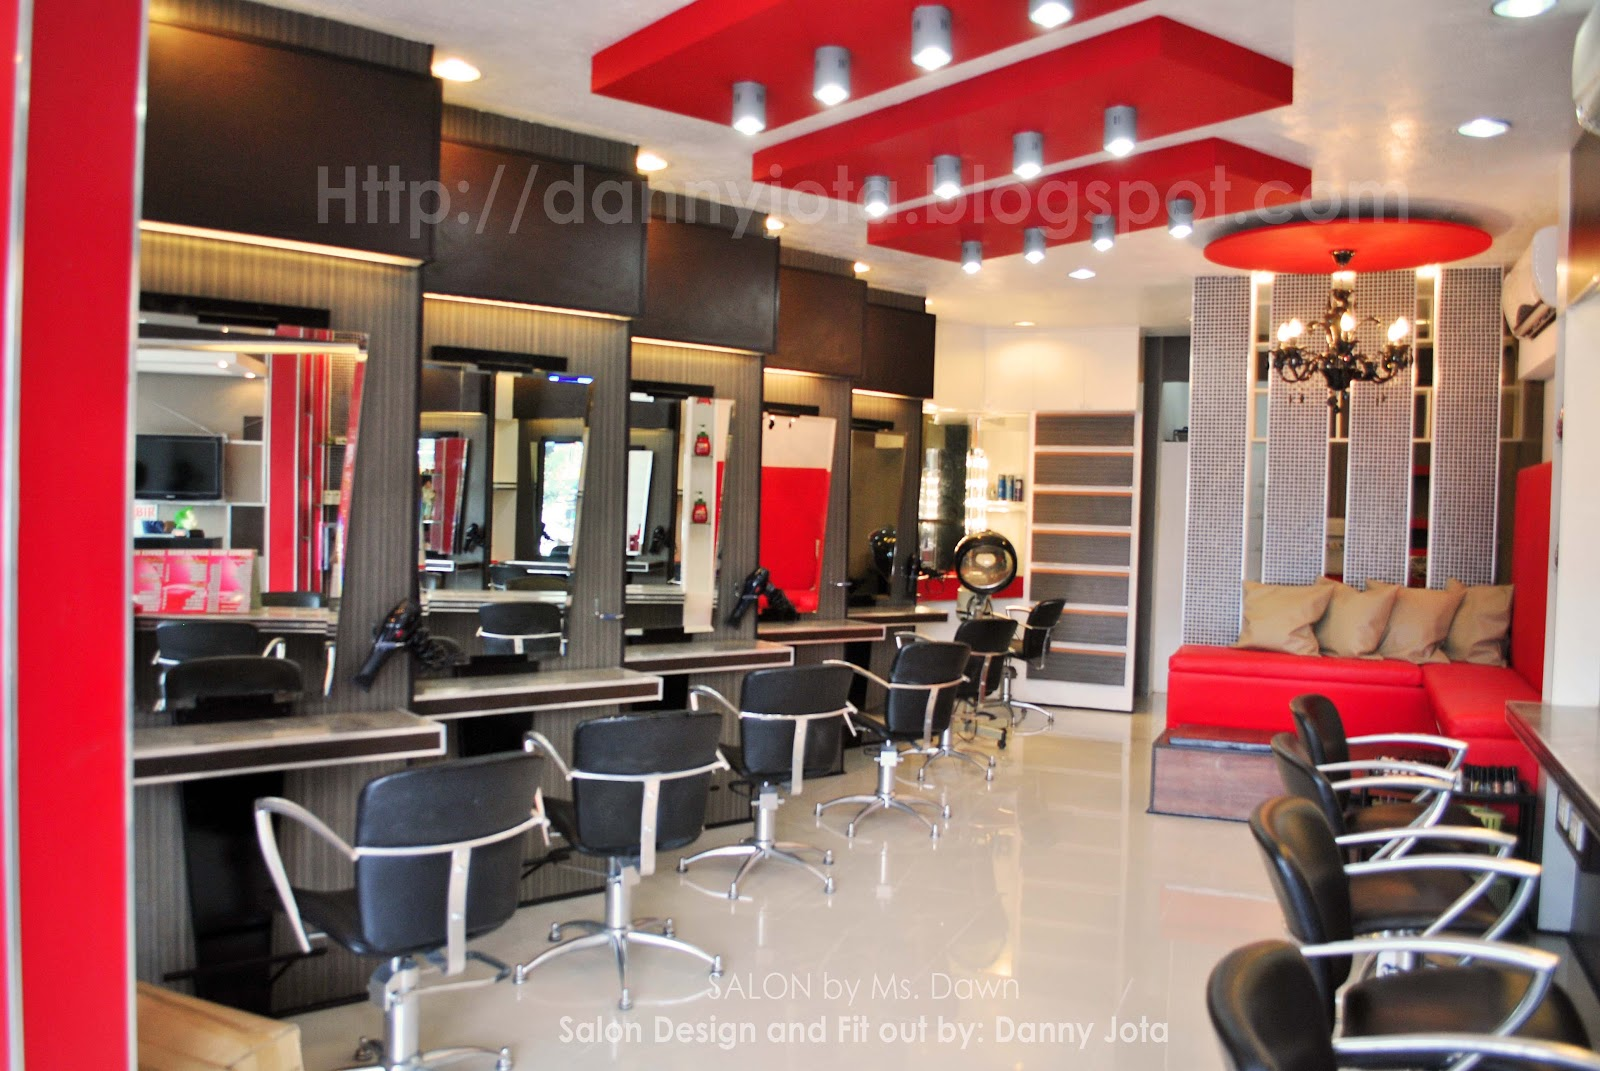 Salons Design Danny Torres Jota Djota Designtech New Salon Design And